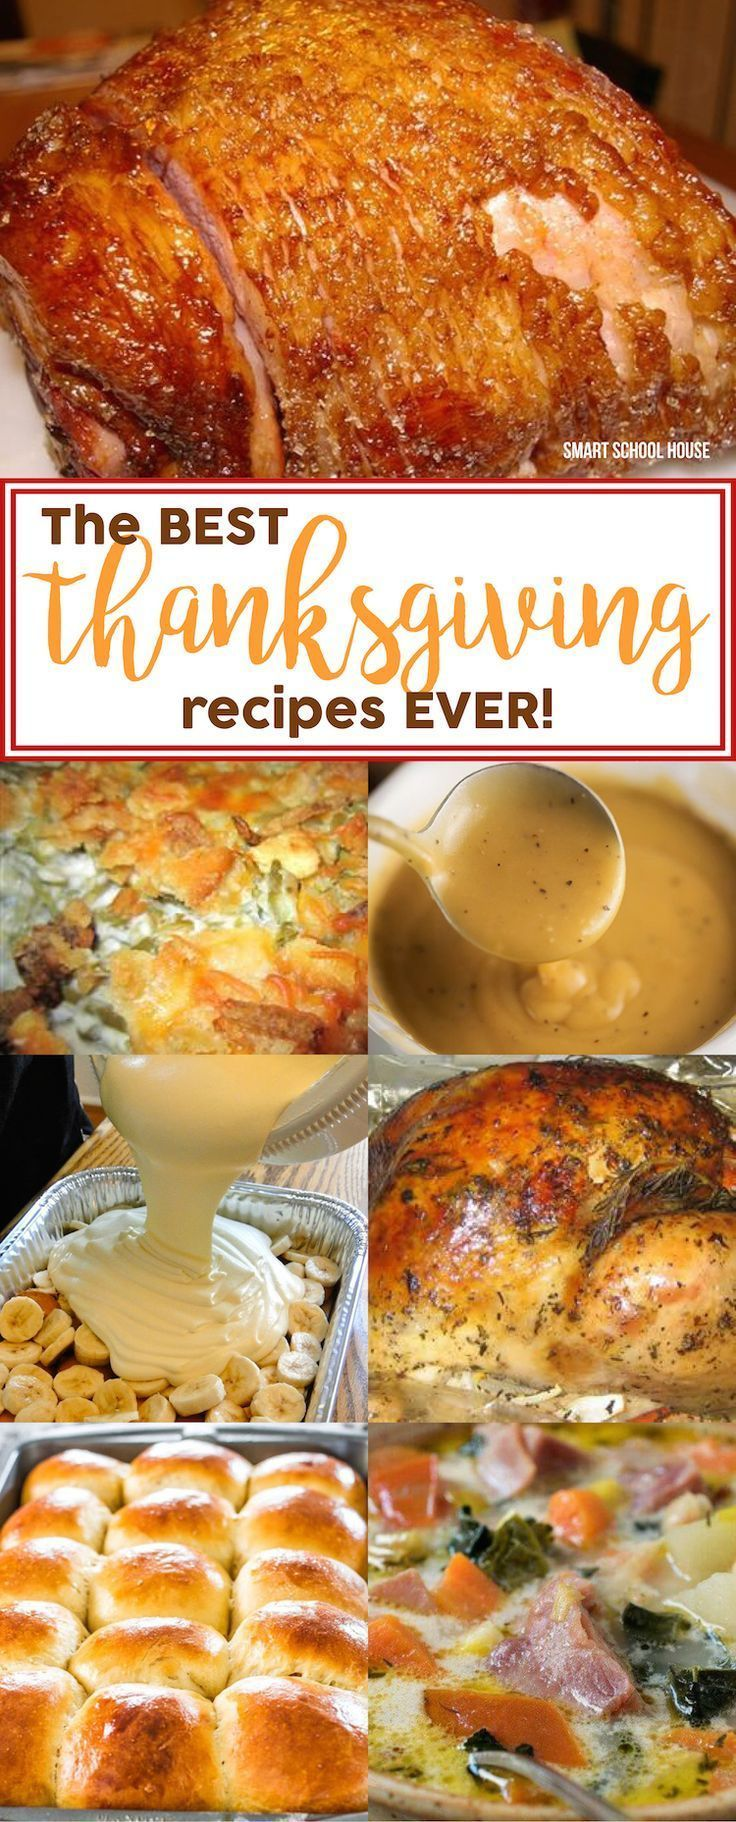 The BEST Thanksgiving recipes EVER! The best recipes for Thanksgiving turkey and stuffing, pumpkin pie, mashed potatoes, gravy,